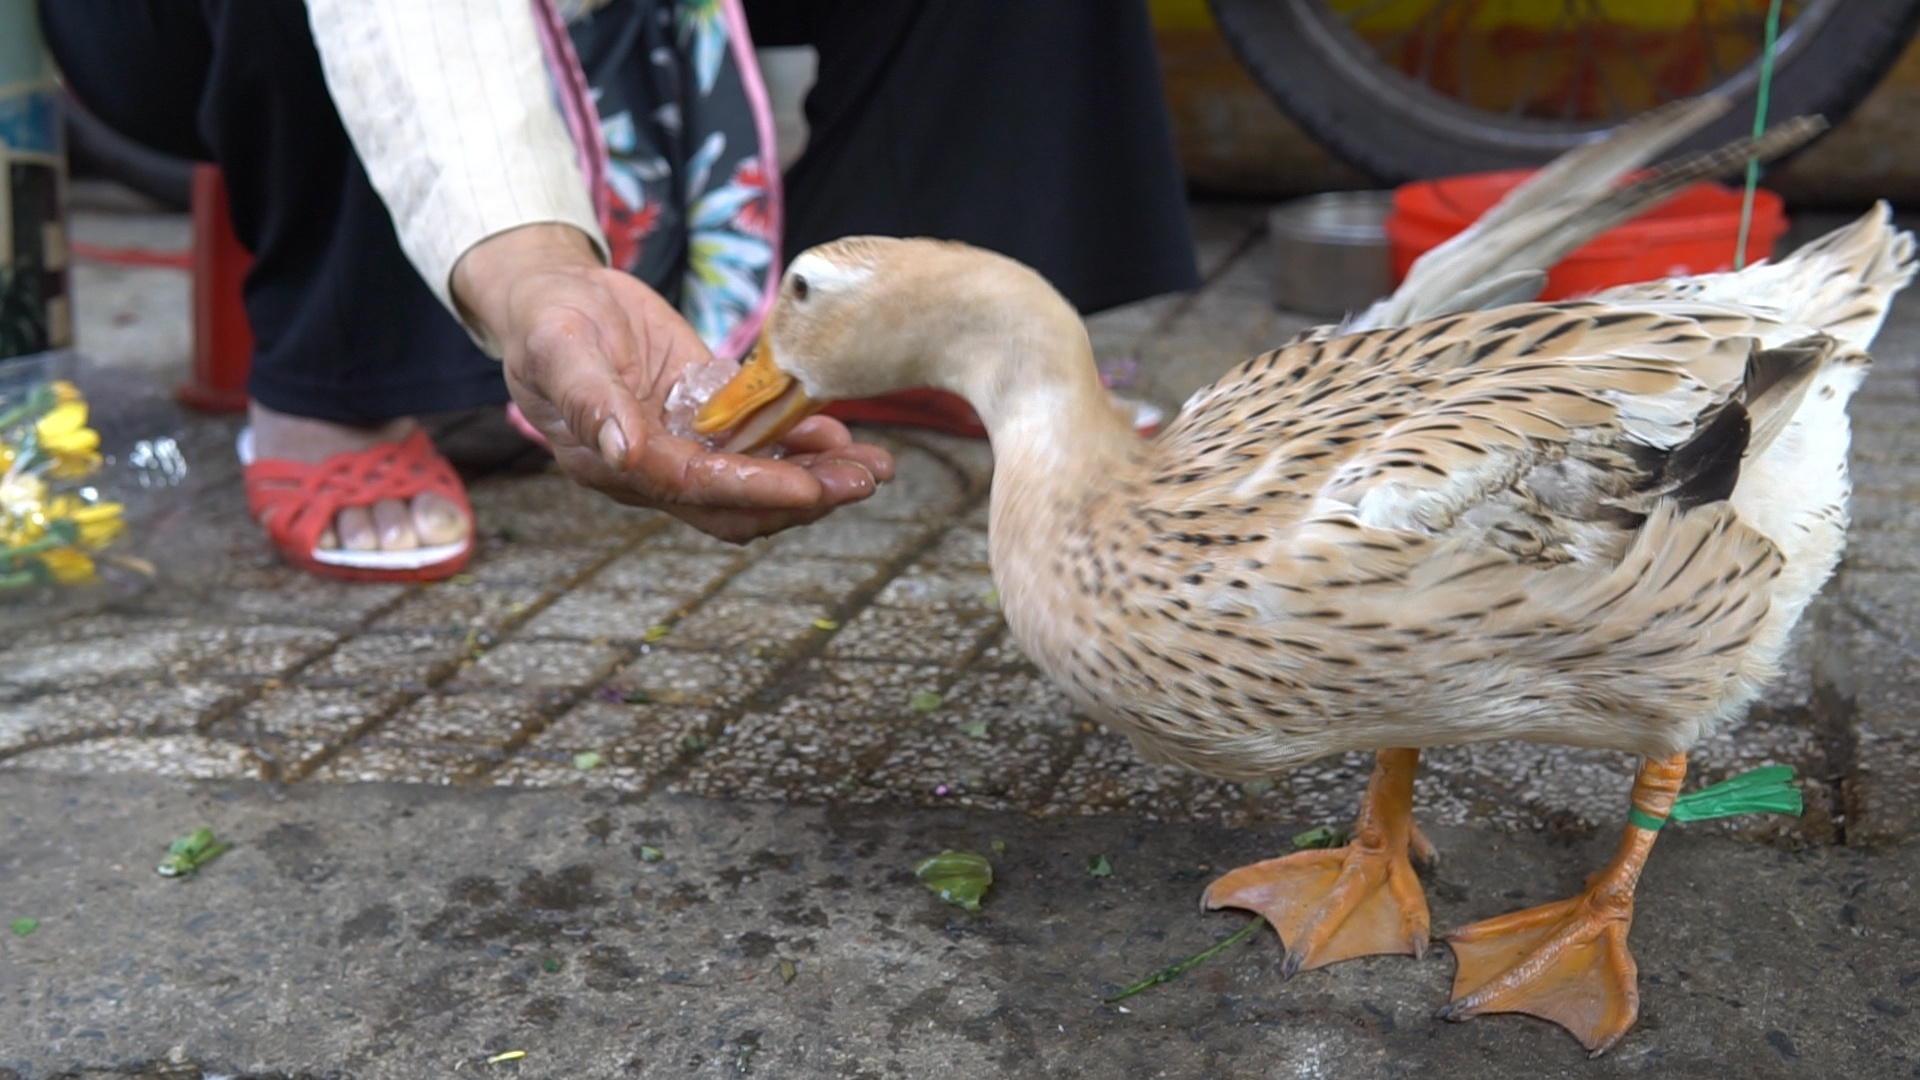 The ducks love ice cubes (Photo: Thanh Nien)